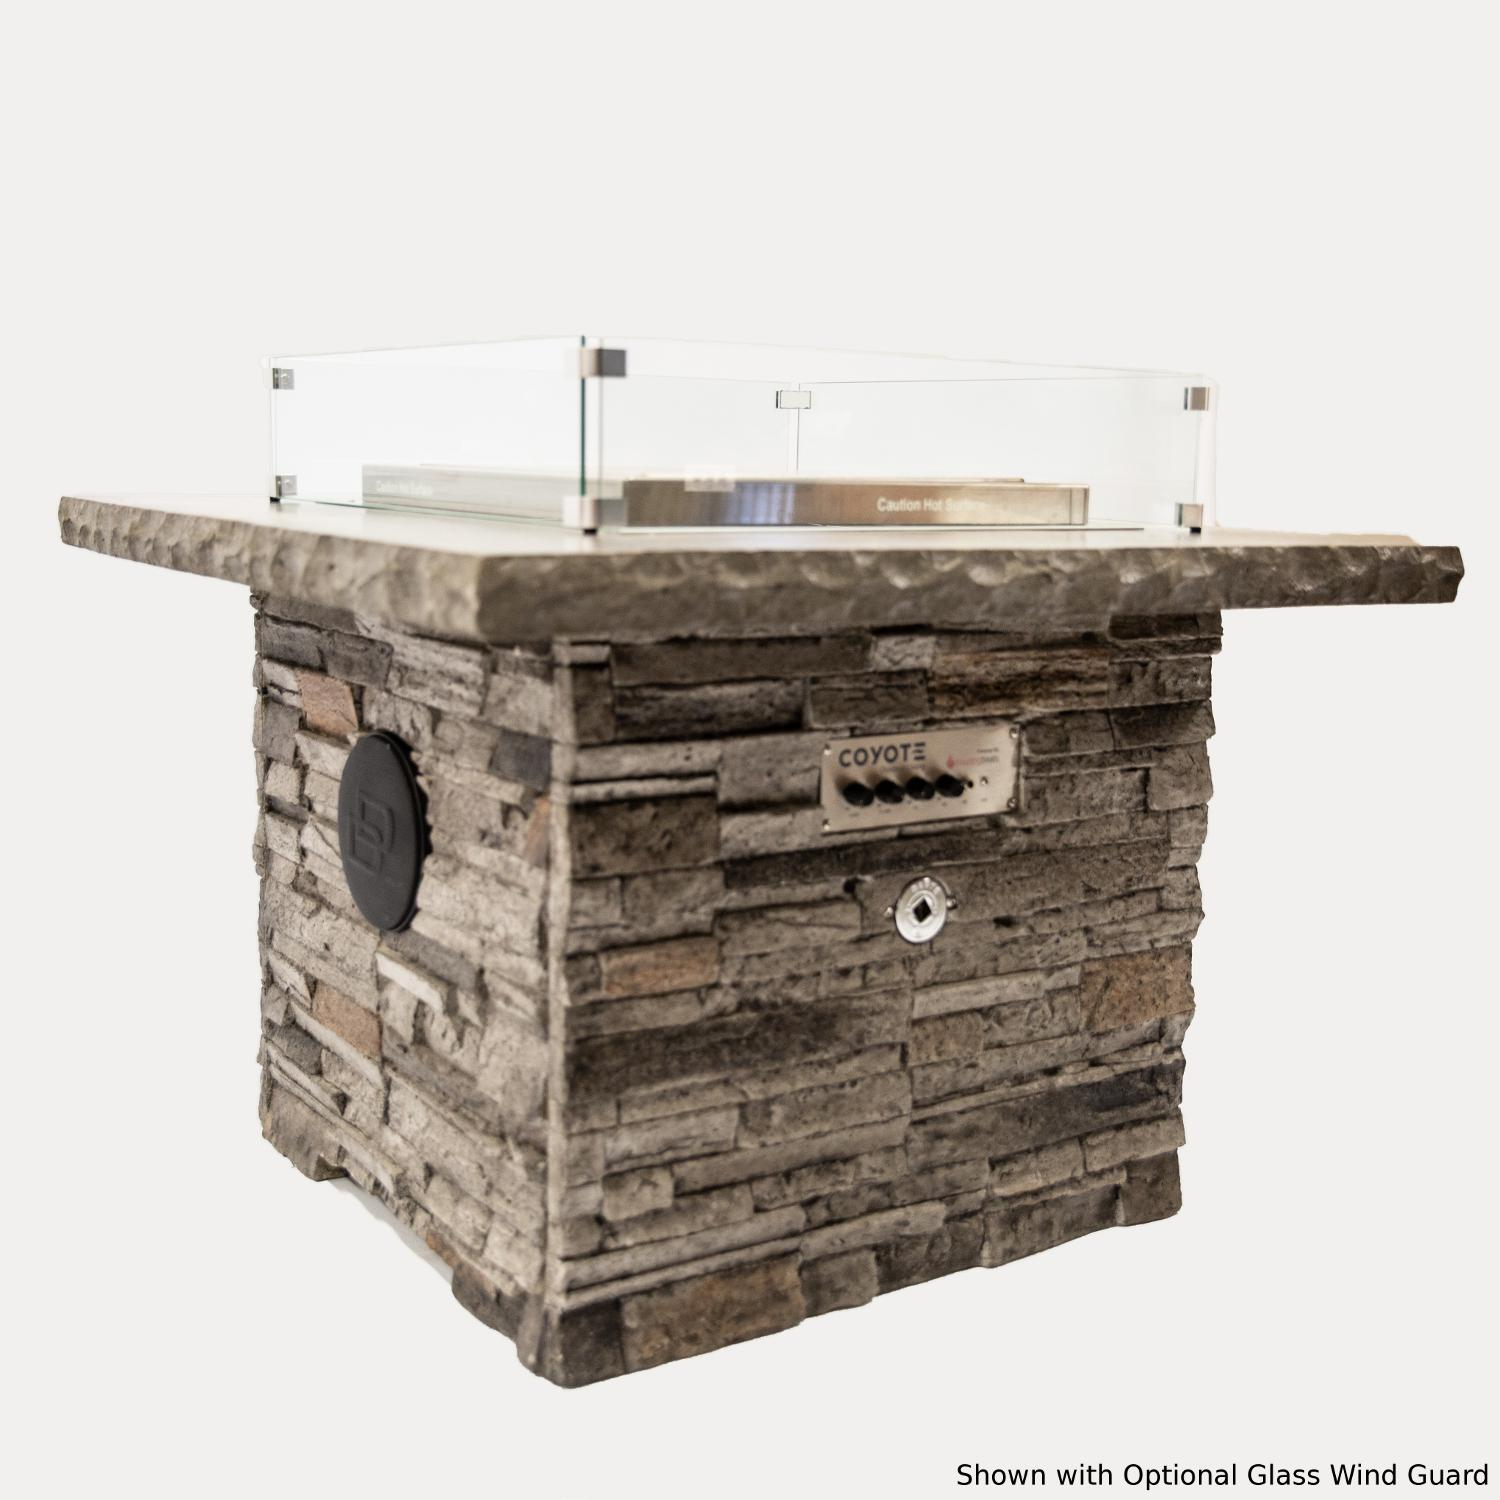 Blazing Beats Dancing Flame 38 Fire Table W/ Bluetooth Audio - Graycastle - Natural Gas - COY-GRAY-BB-NG